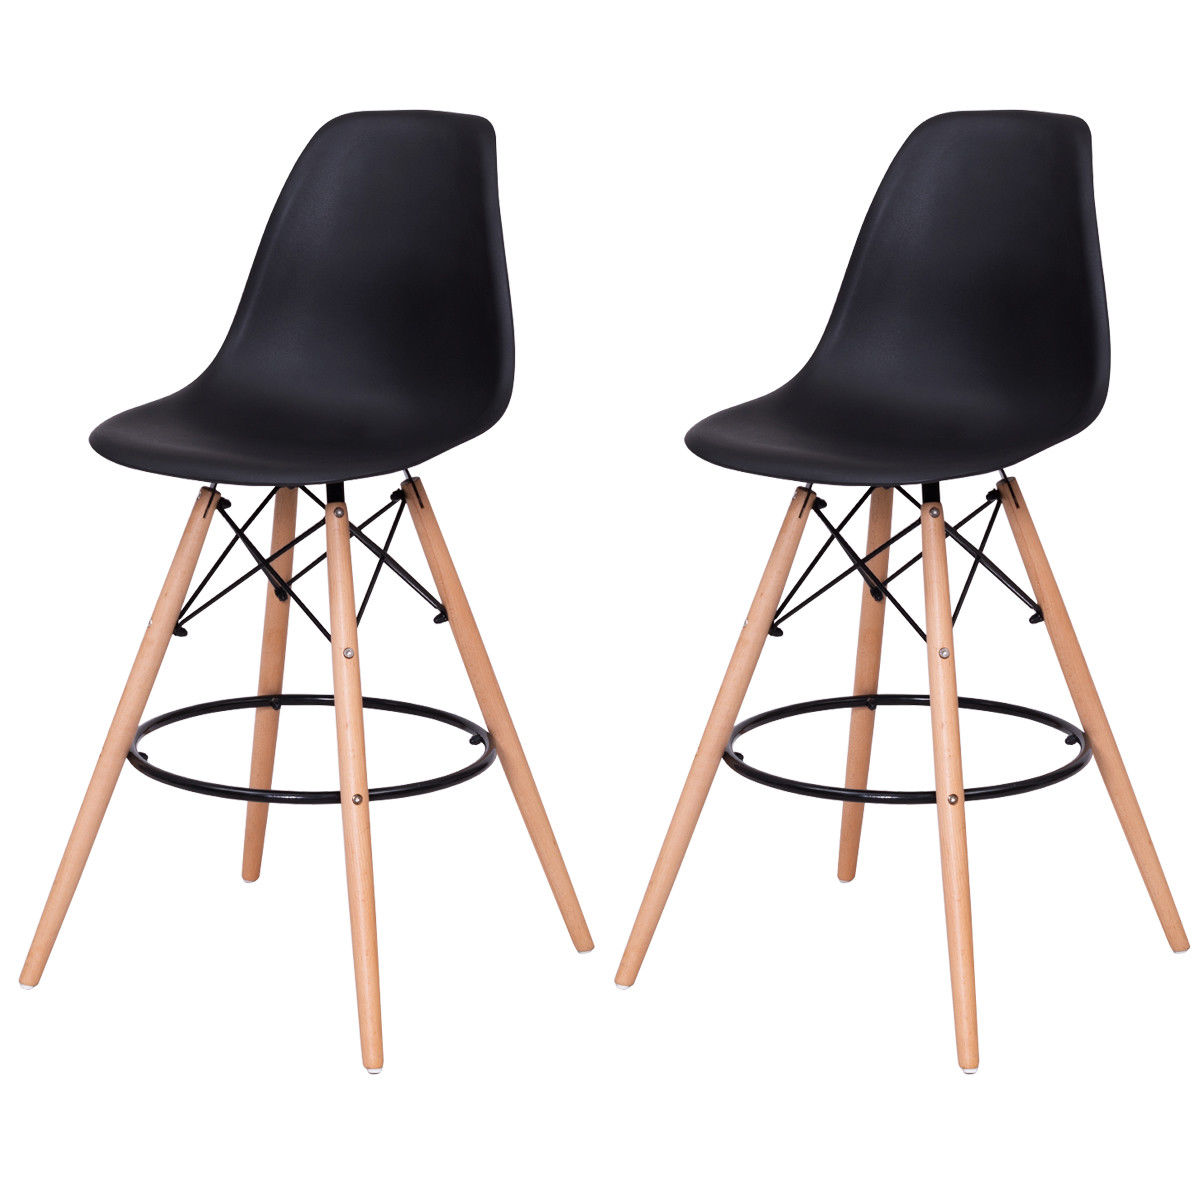 Costway Set of 2 Dining Side Armless Accent Chair Molded Plastic Seat Wooden Legs Black